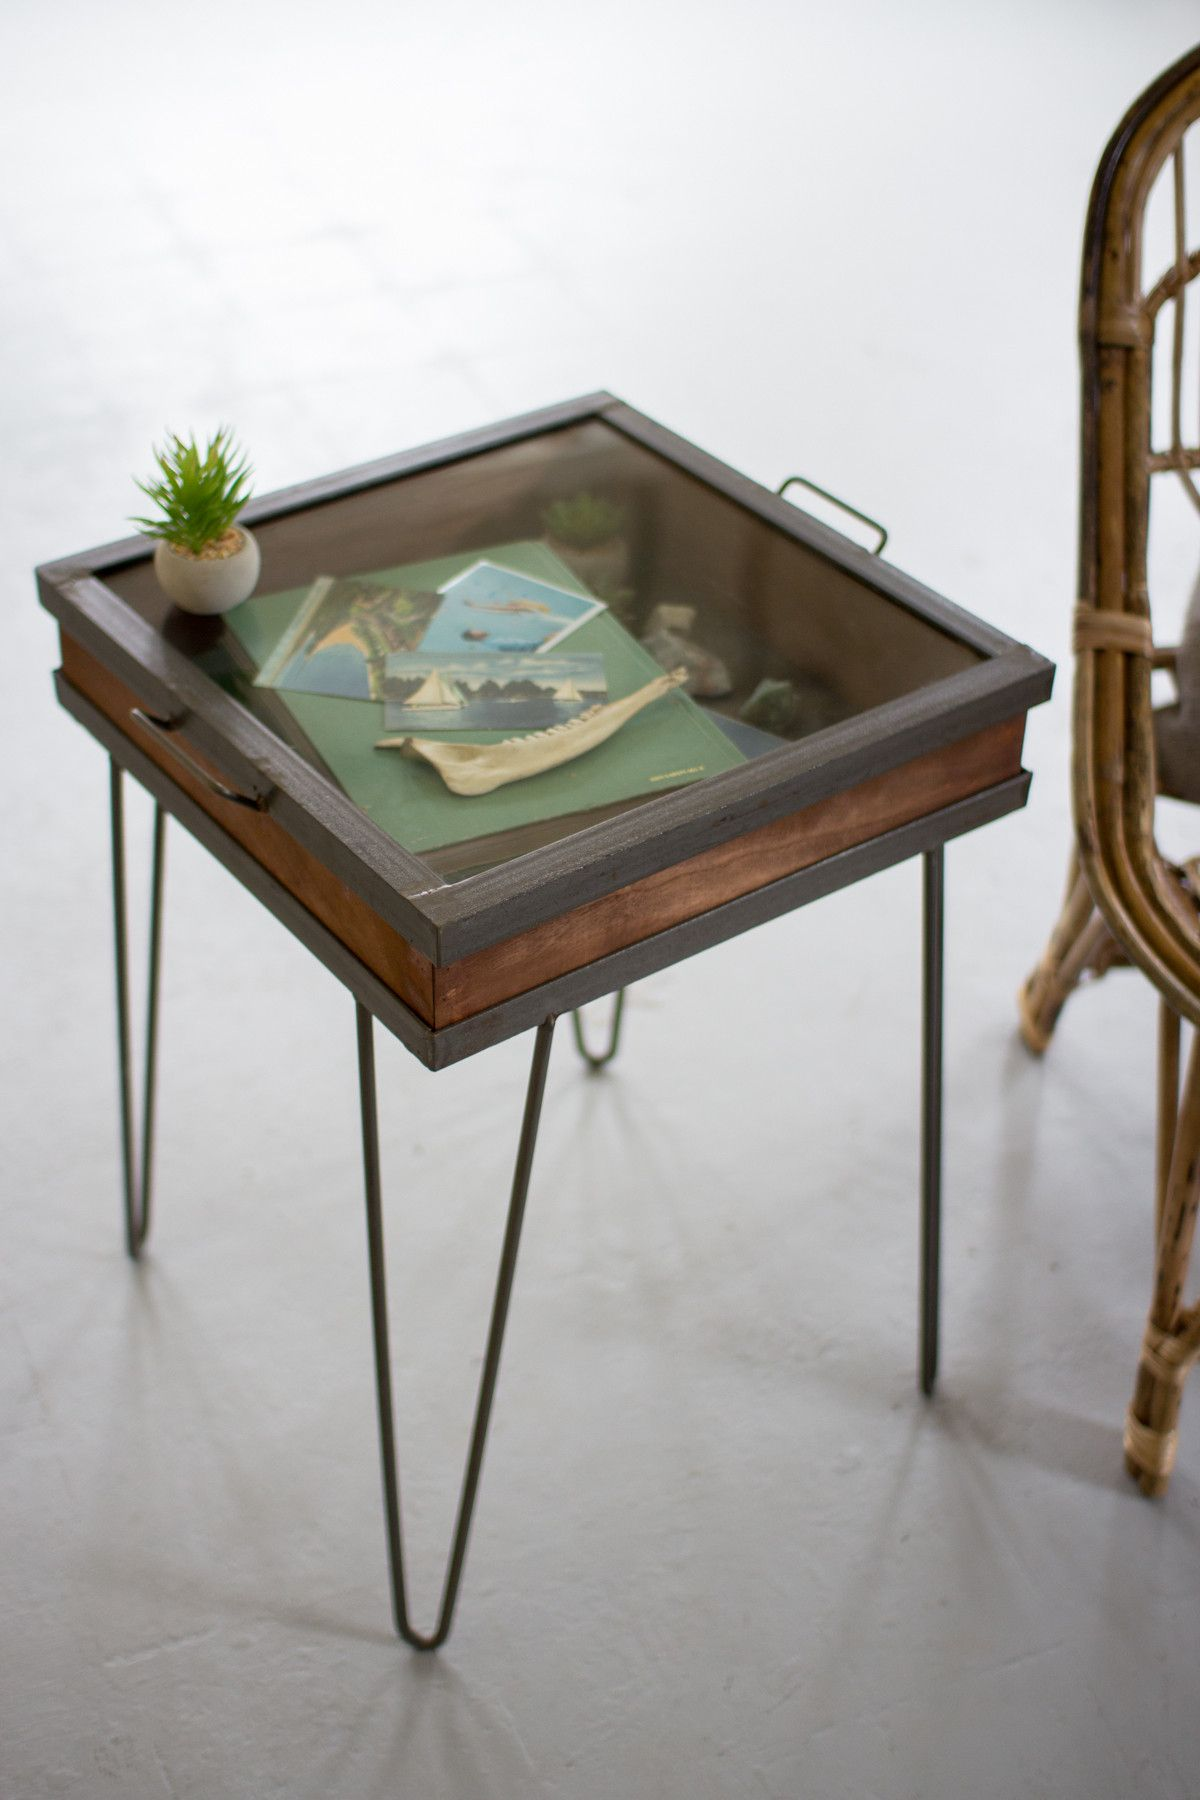 Modern glass end table  Recycled Wood And Iron Showcase Table With Glass Top  Iron Woods